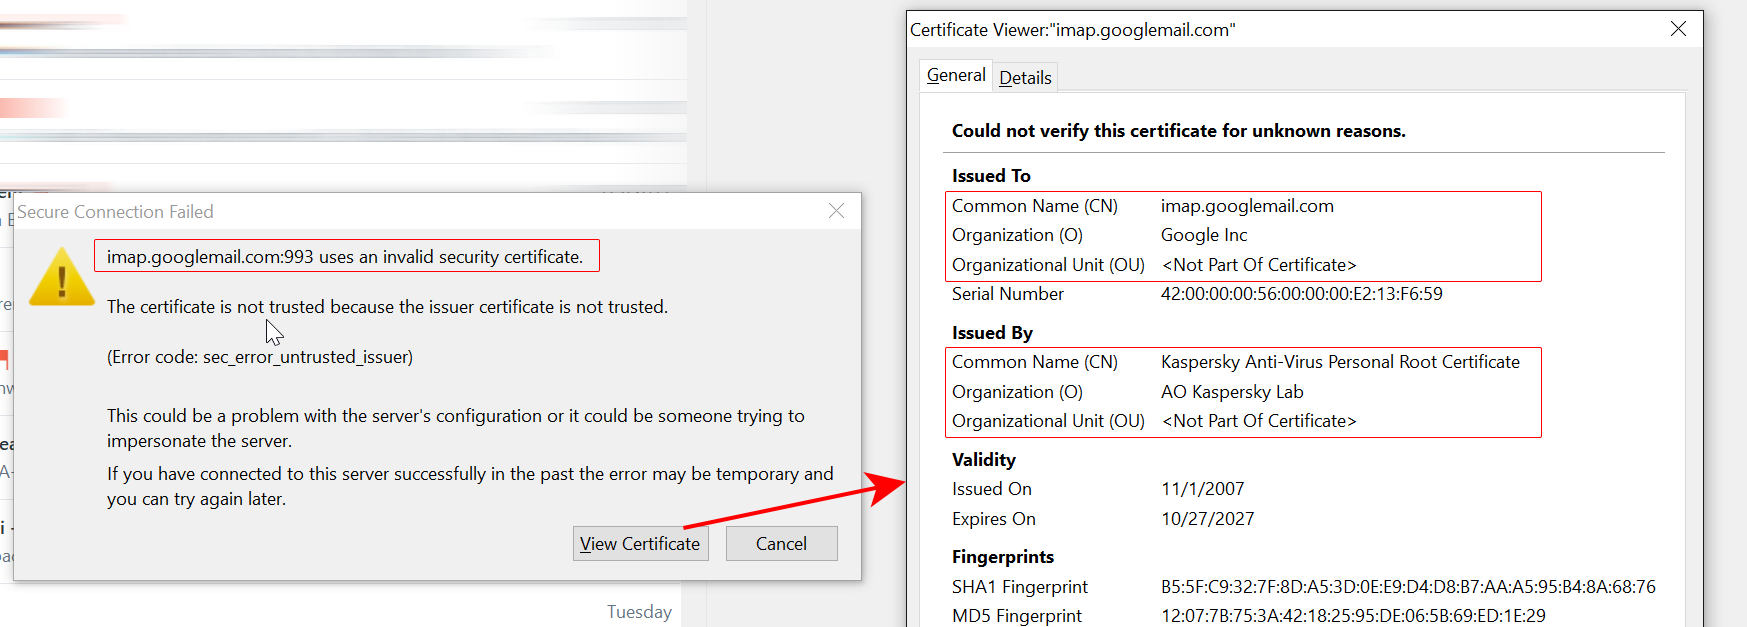 Gmail certificate warning in Postbox caused by Kaspersky Lab's internet security software